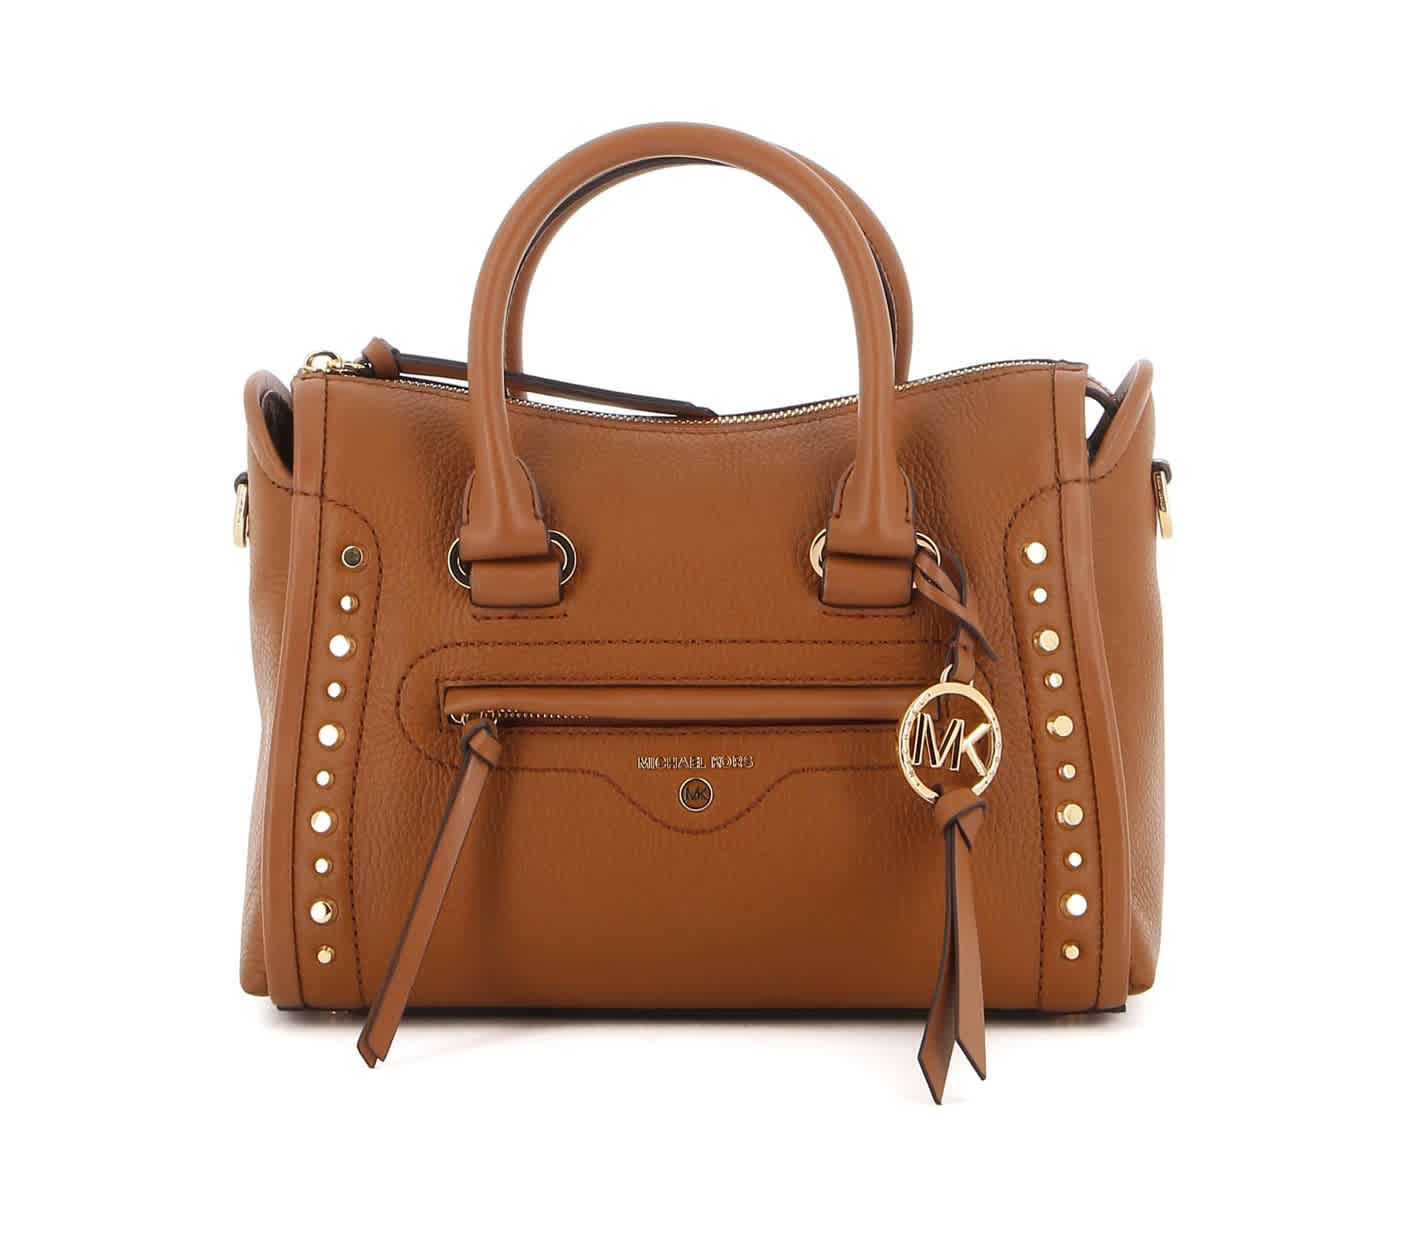 Michael Kors Carine Small Studded Pebbled Leather Satchel In Luggage